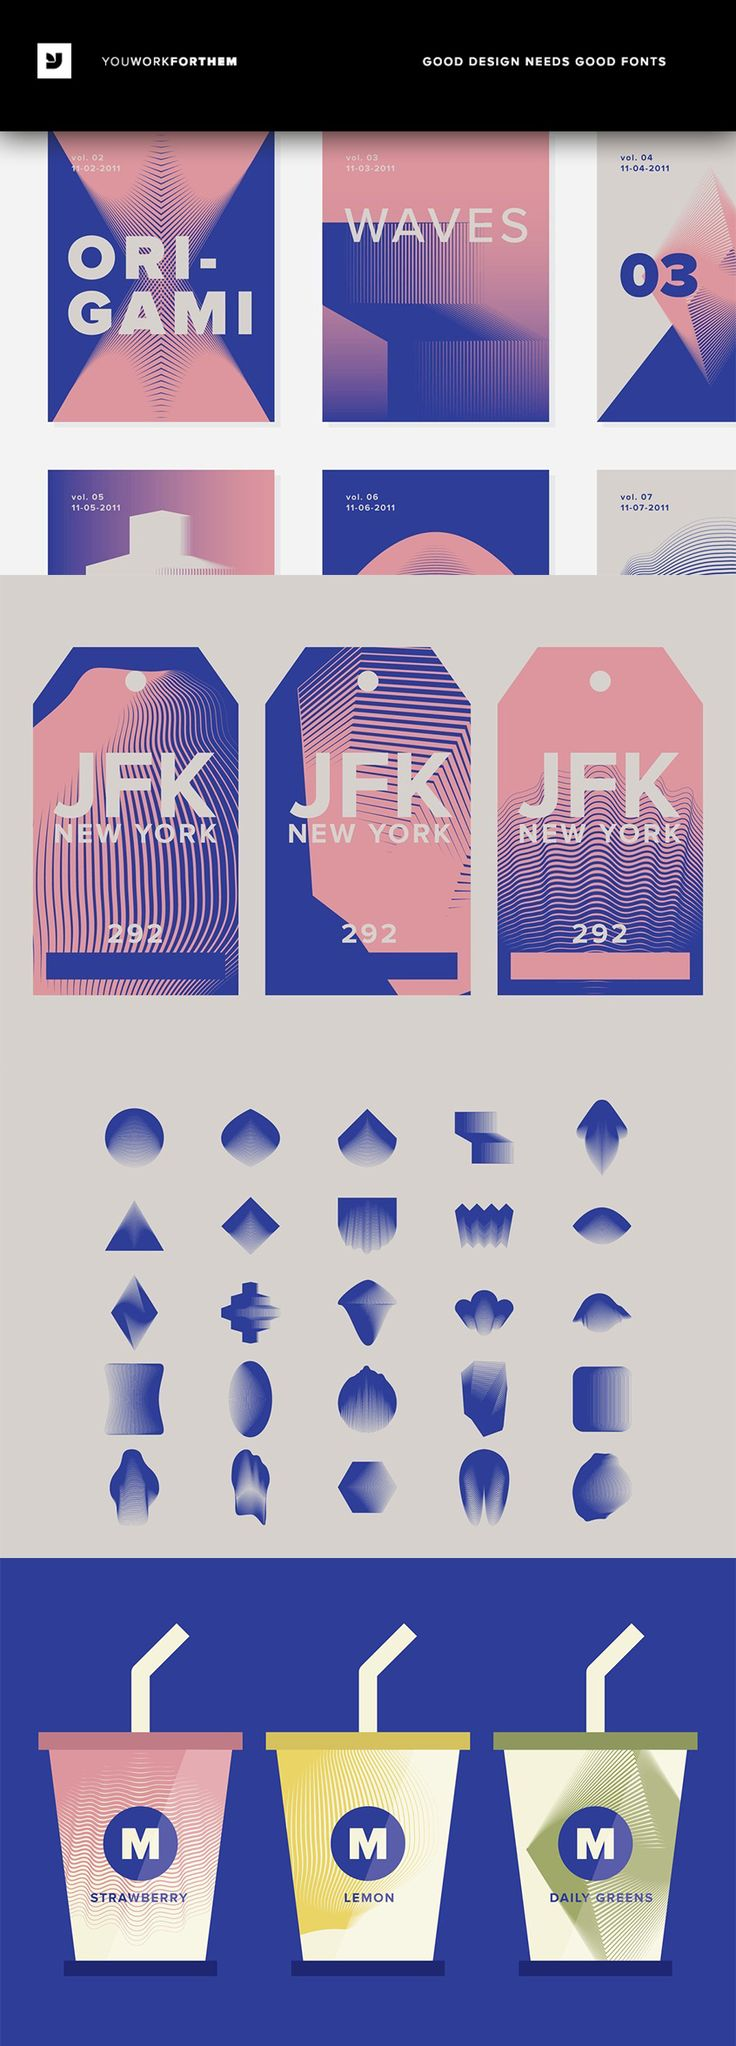 #affiliate A collection of 25 warped, sharp, liquid-like vector drawings inspired by Origami patterns. Taking the idea of Japanese Origami and throwing a distorted wave-like twist on it, this collection gives you a very unique set of design elements. For Adobe Illustrator or Corel Draw